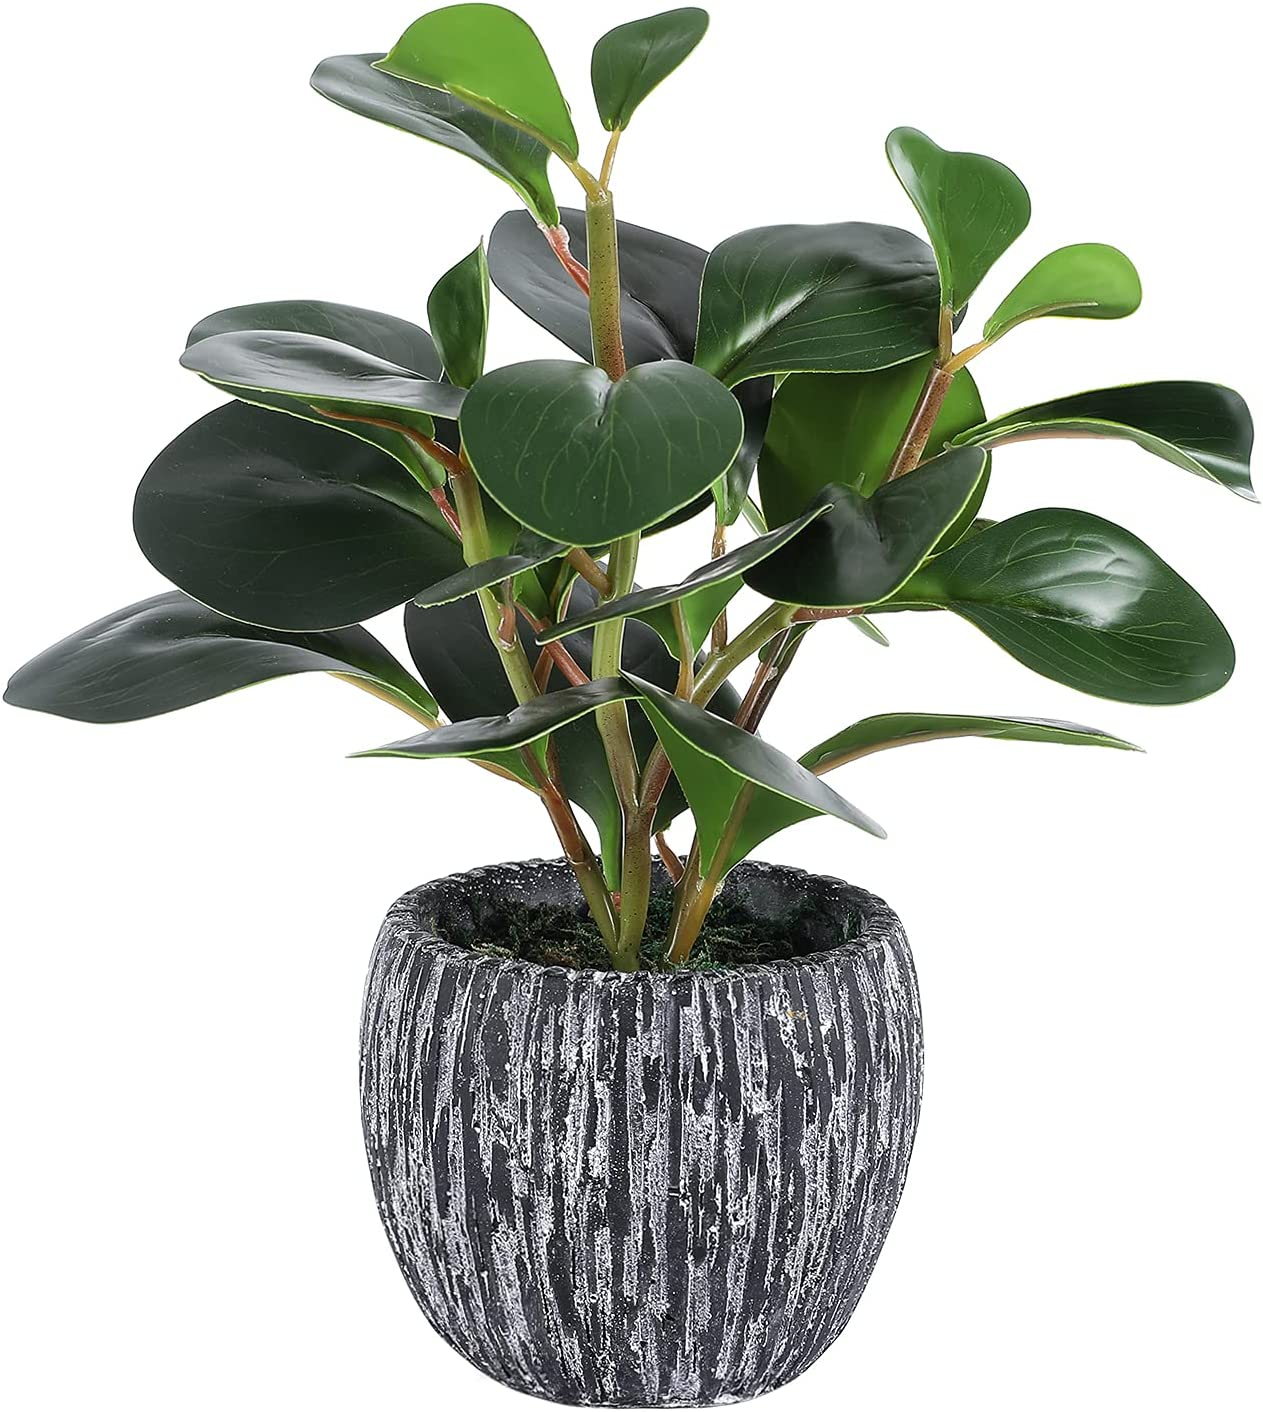 Fake Plants Mini Potted Artificial F Las Vegas Mall Plastic Safety and trust Real Looking